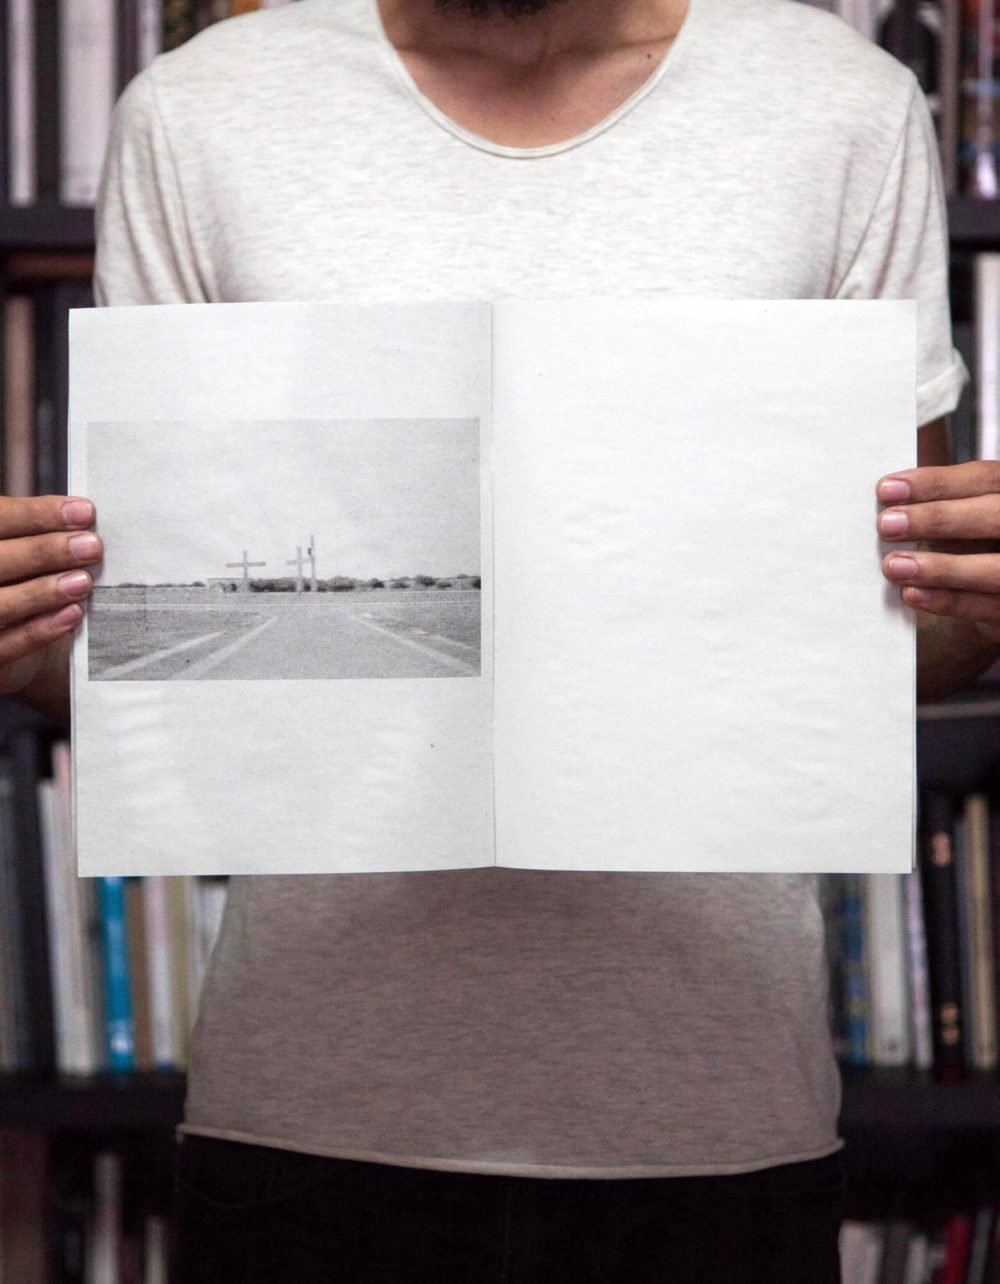 Before the War Book by Alejandro Cartagena, Published 2015 by Studio Cartagena